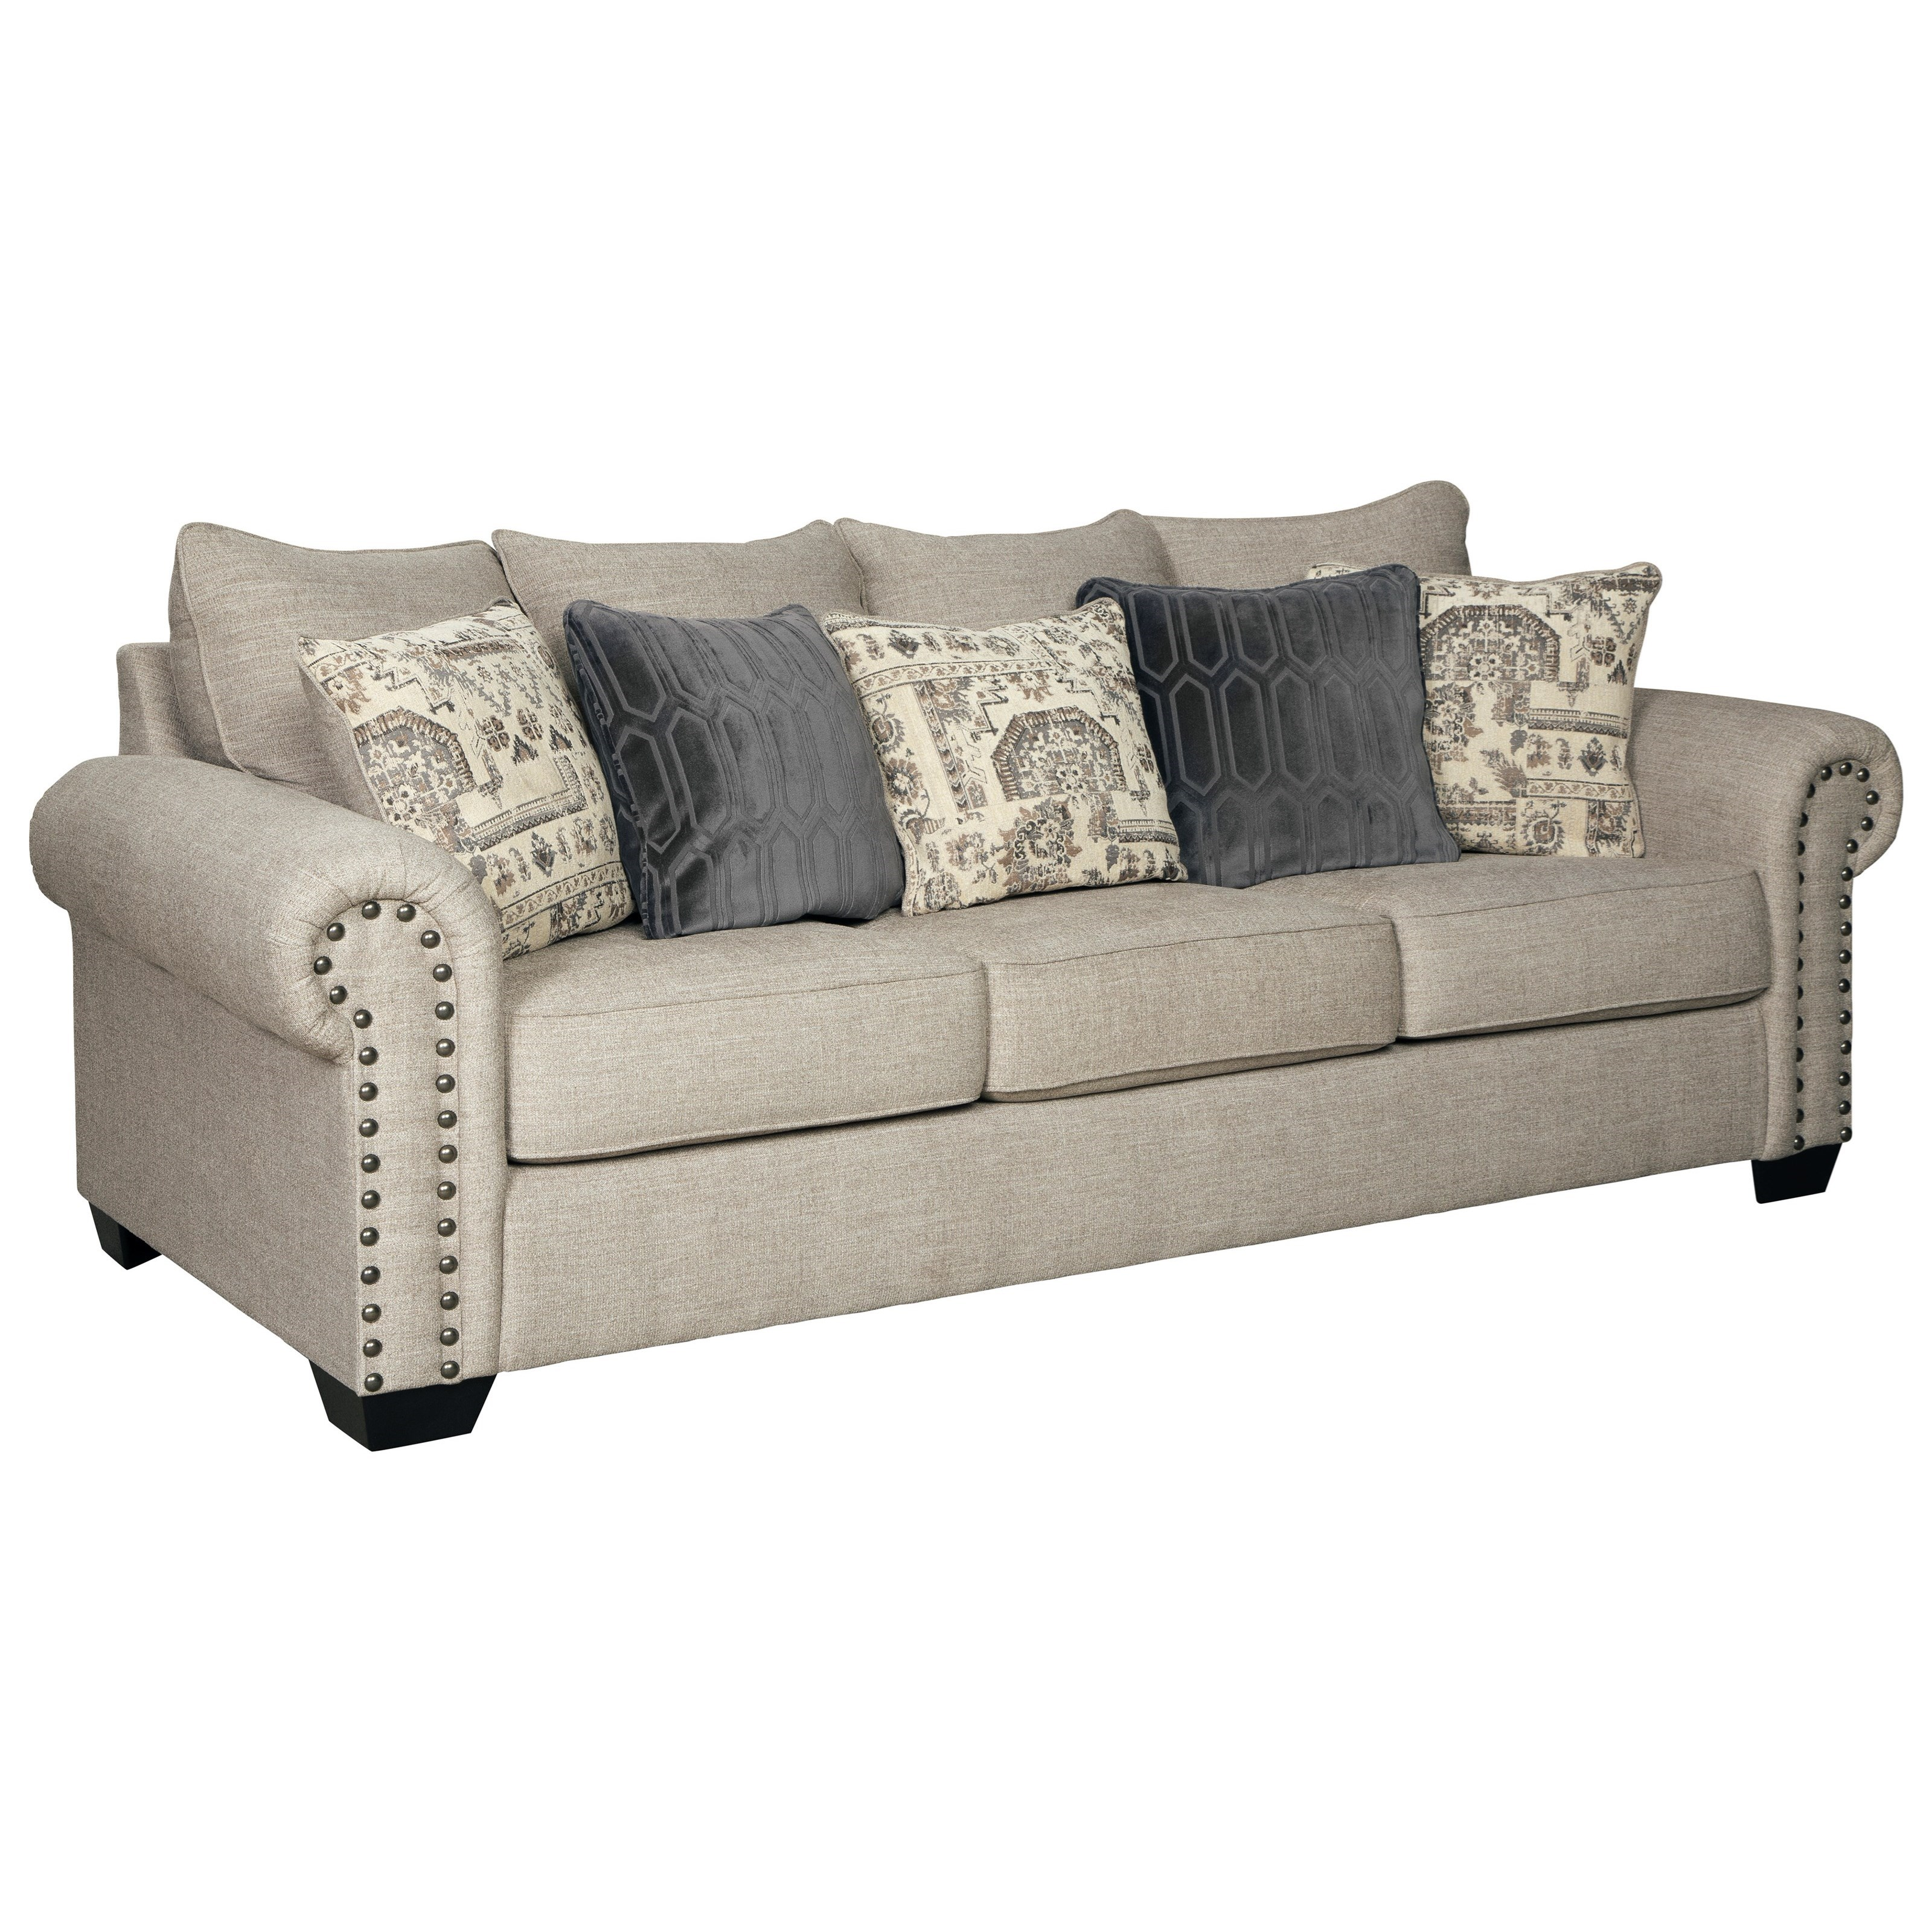 Signature Design By Ashley Zarina Transitional Sofa With